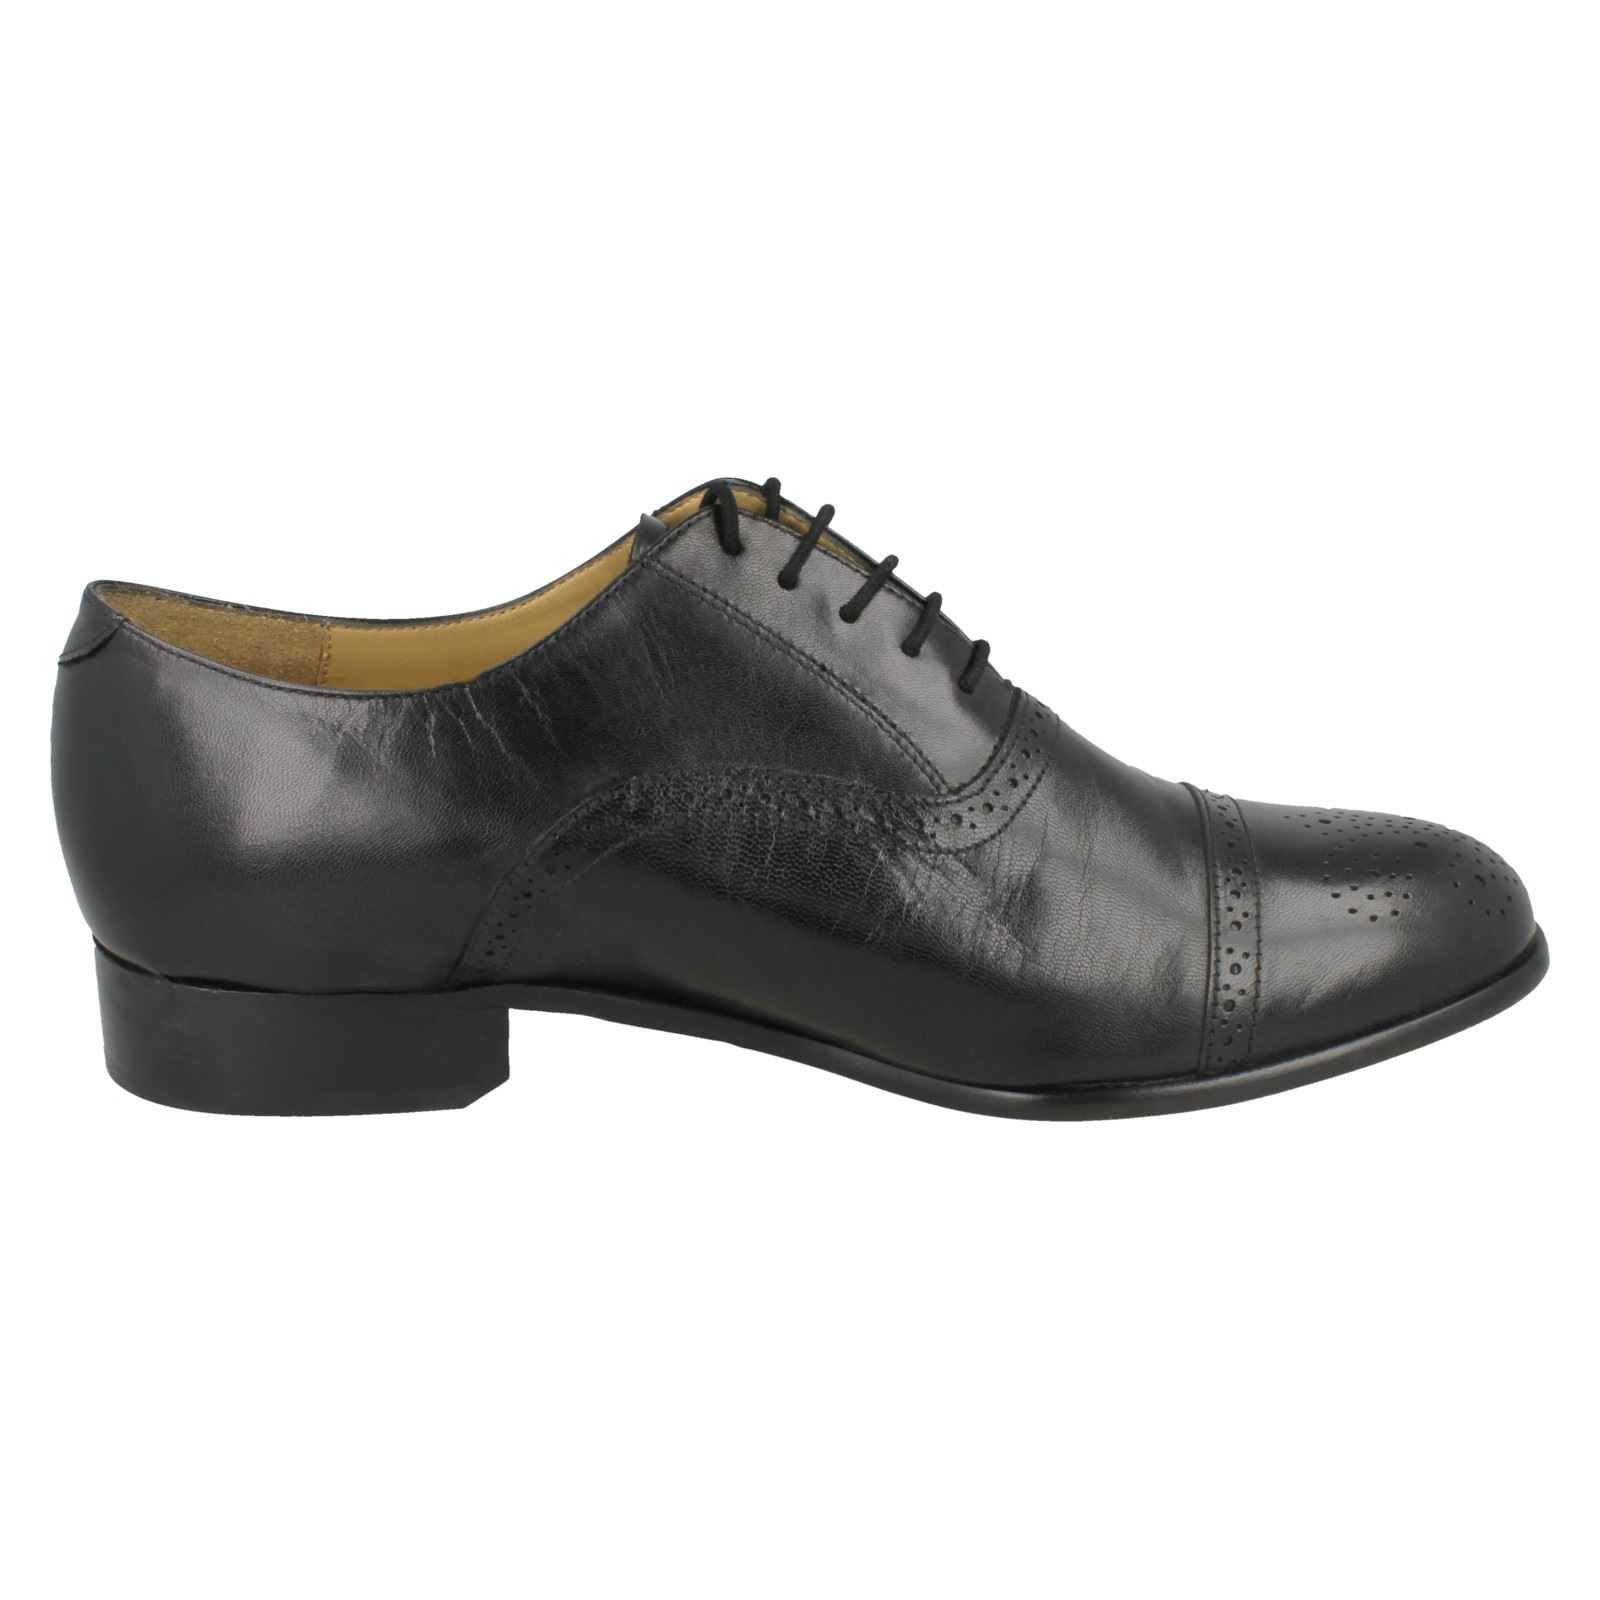 Homme Cuir THOMAS Blunt Smart Cuir Homme Formelle Chaussures-St Pancras 65a7cd